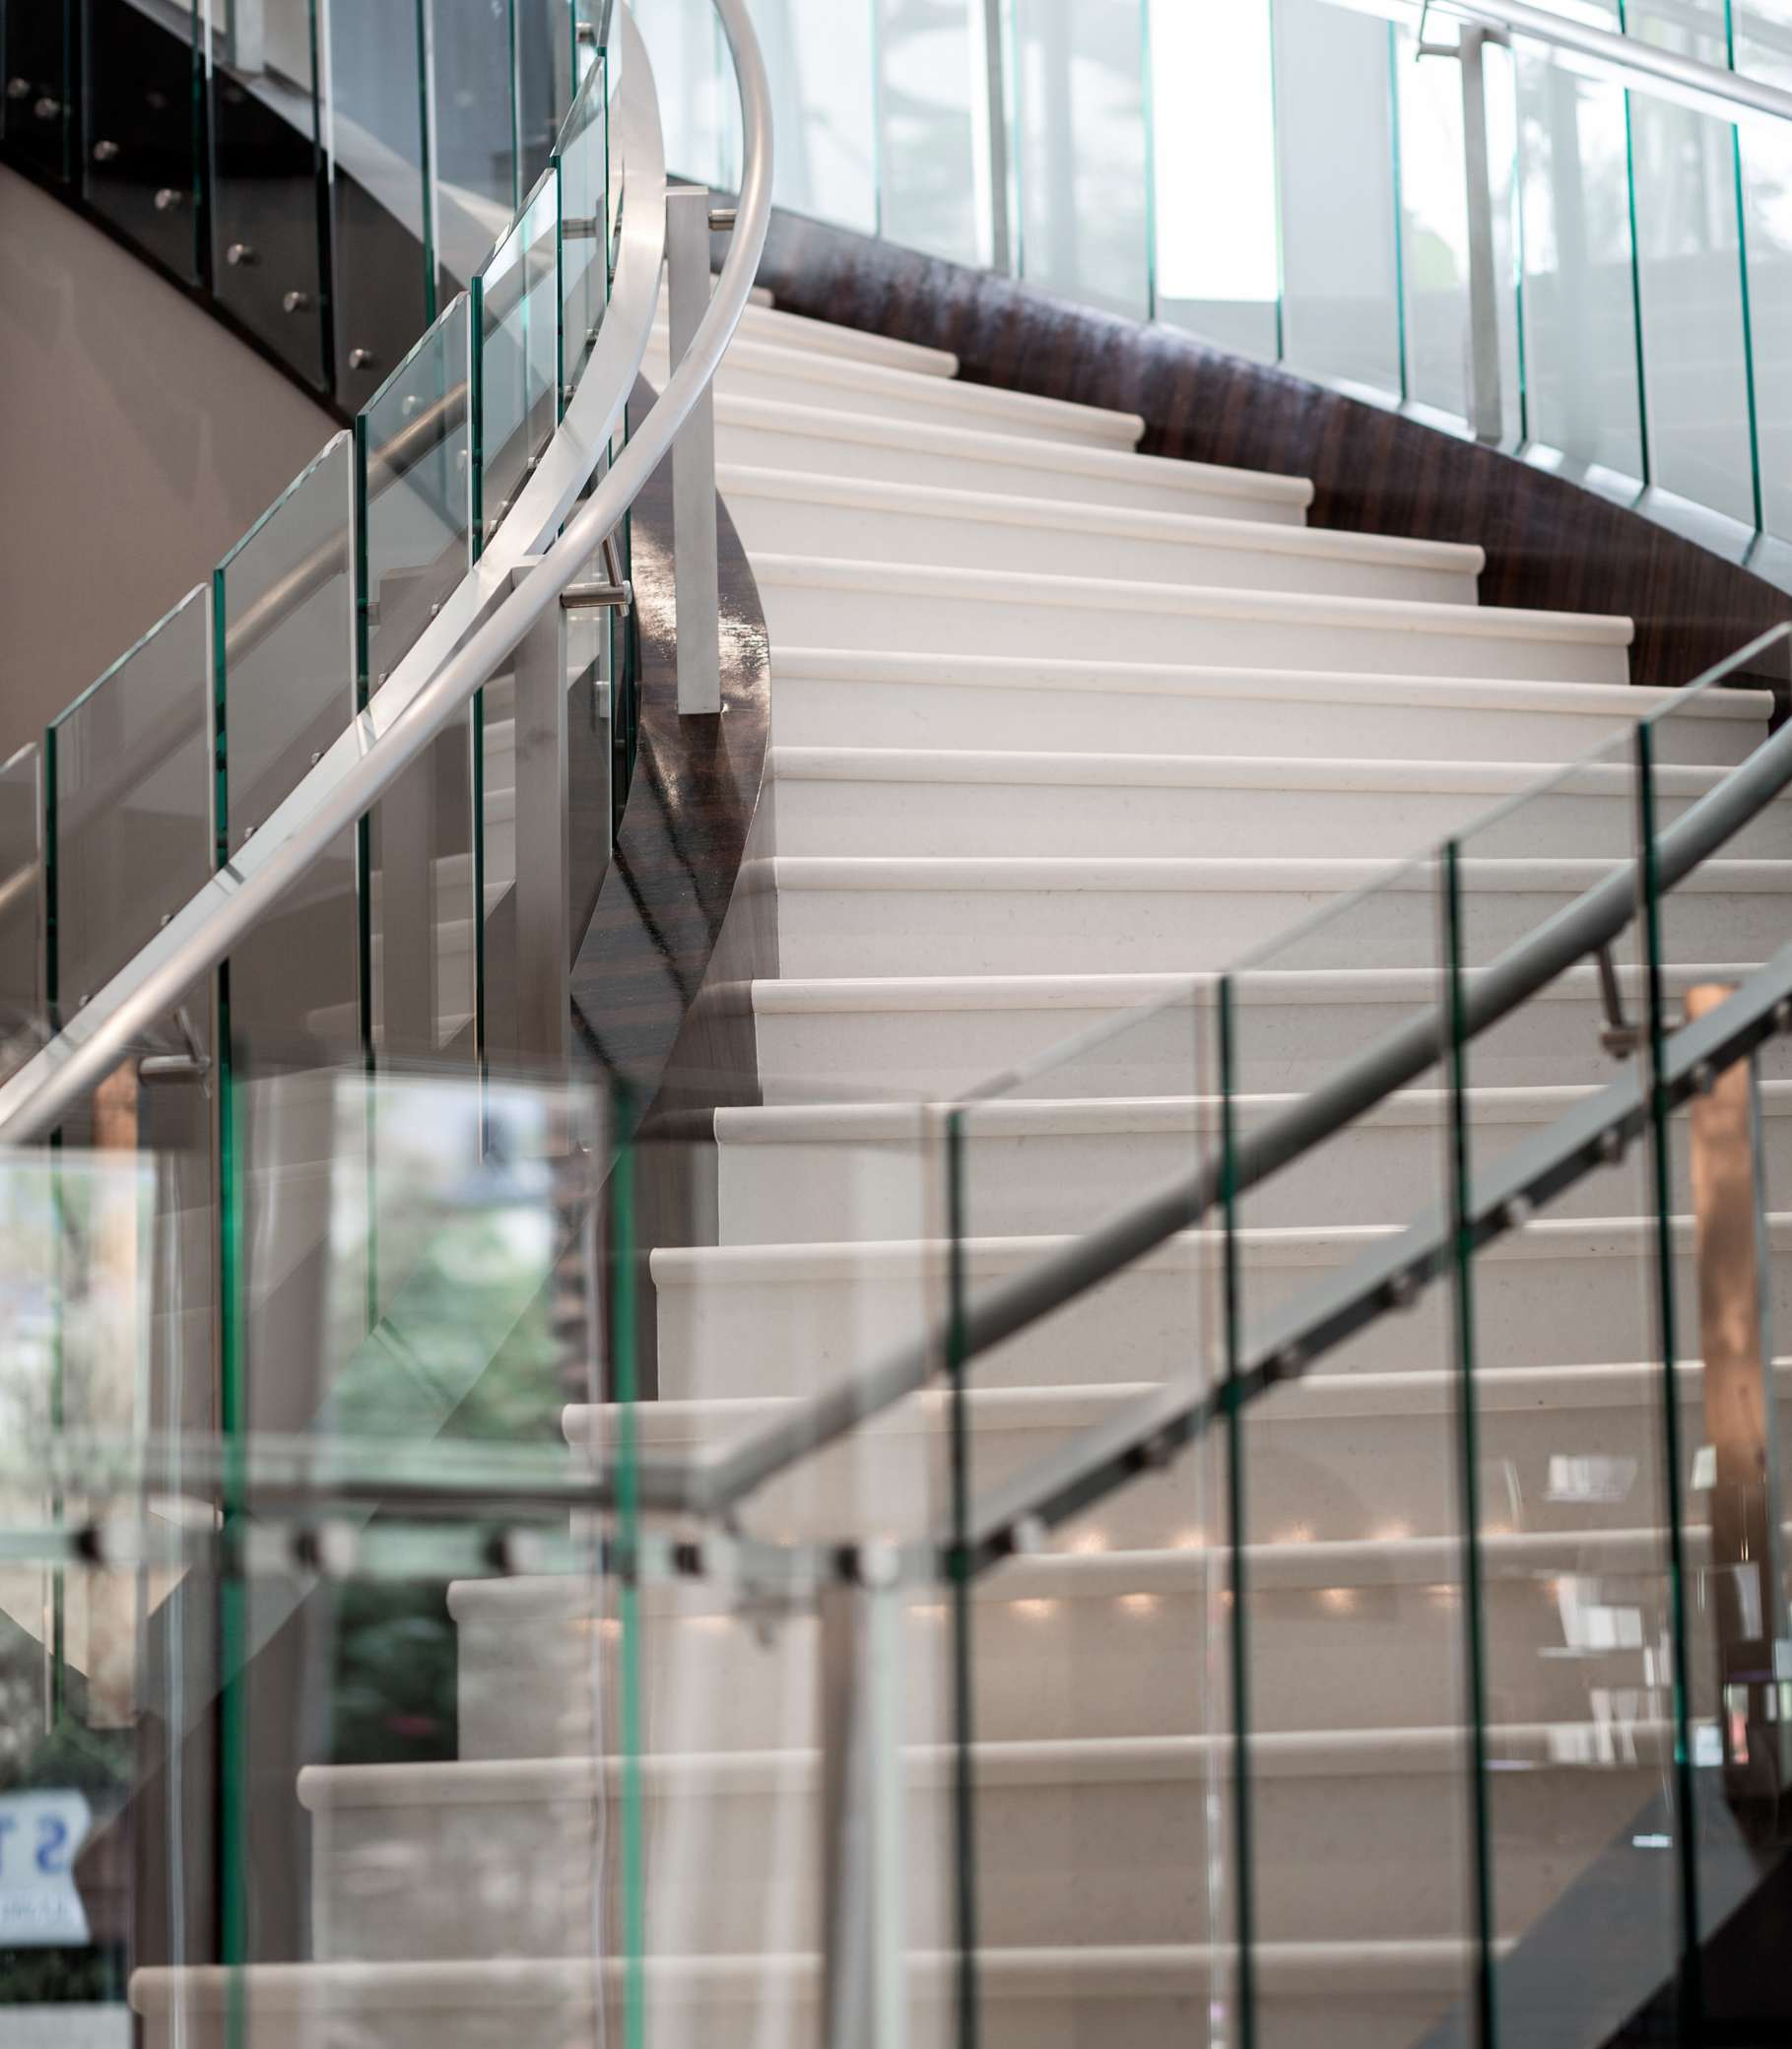 Atrium Staircase - Feel like a Hollywood movie star while you walk down our stunning, atrium-style staircase in the center of our hotel.